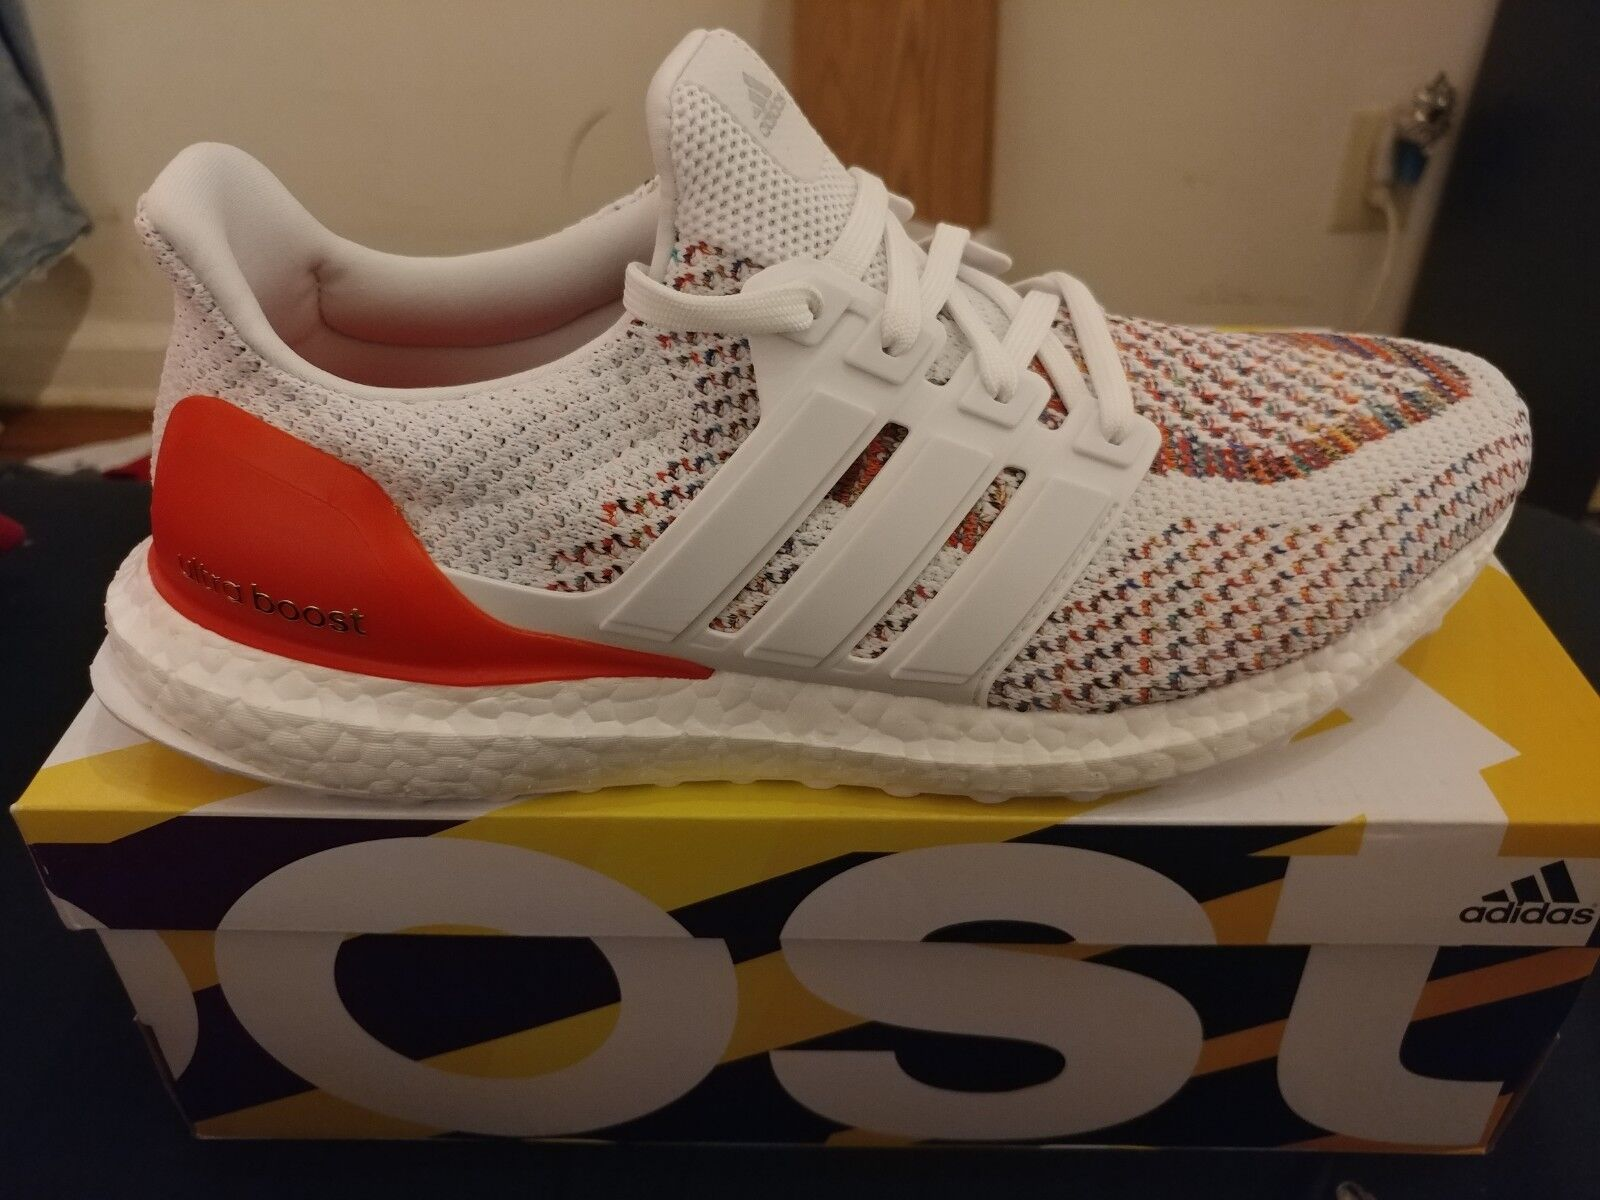 Adidas Ultra Boost 2.0 Multi-Color Size 9.5 - UltraBoost 1.0 3.0 NMD BB3911